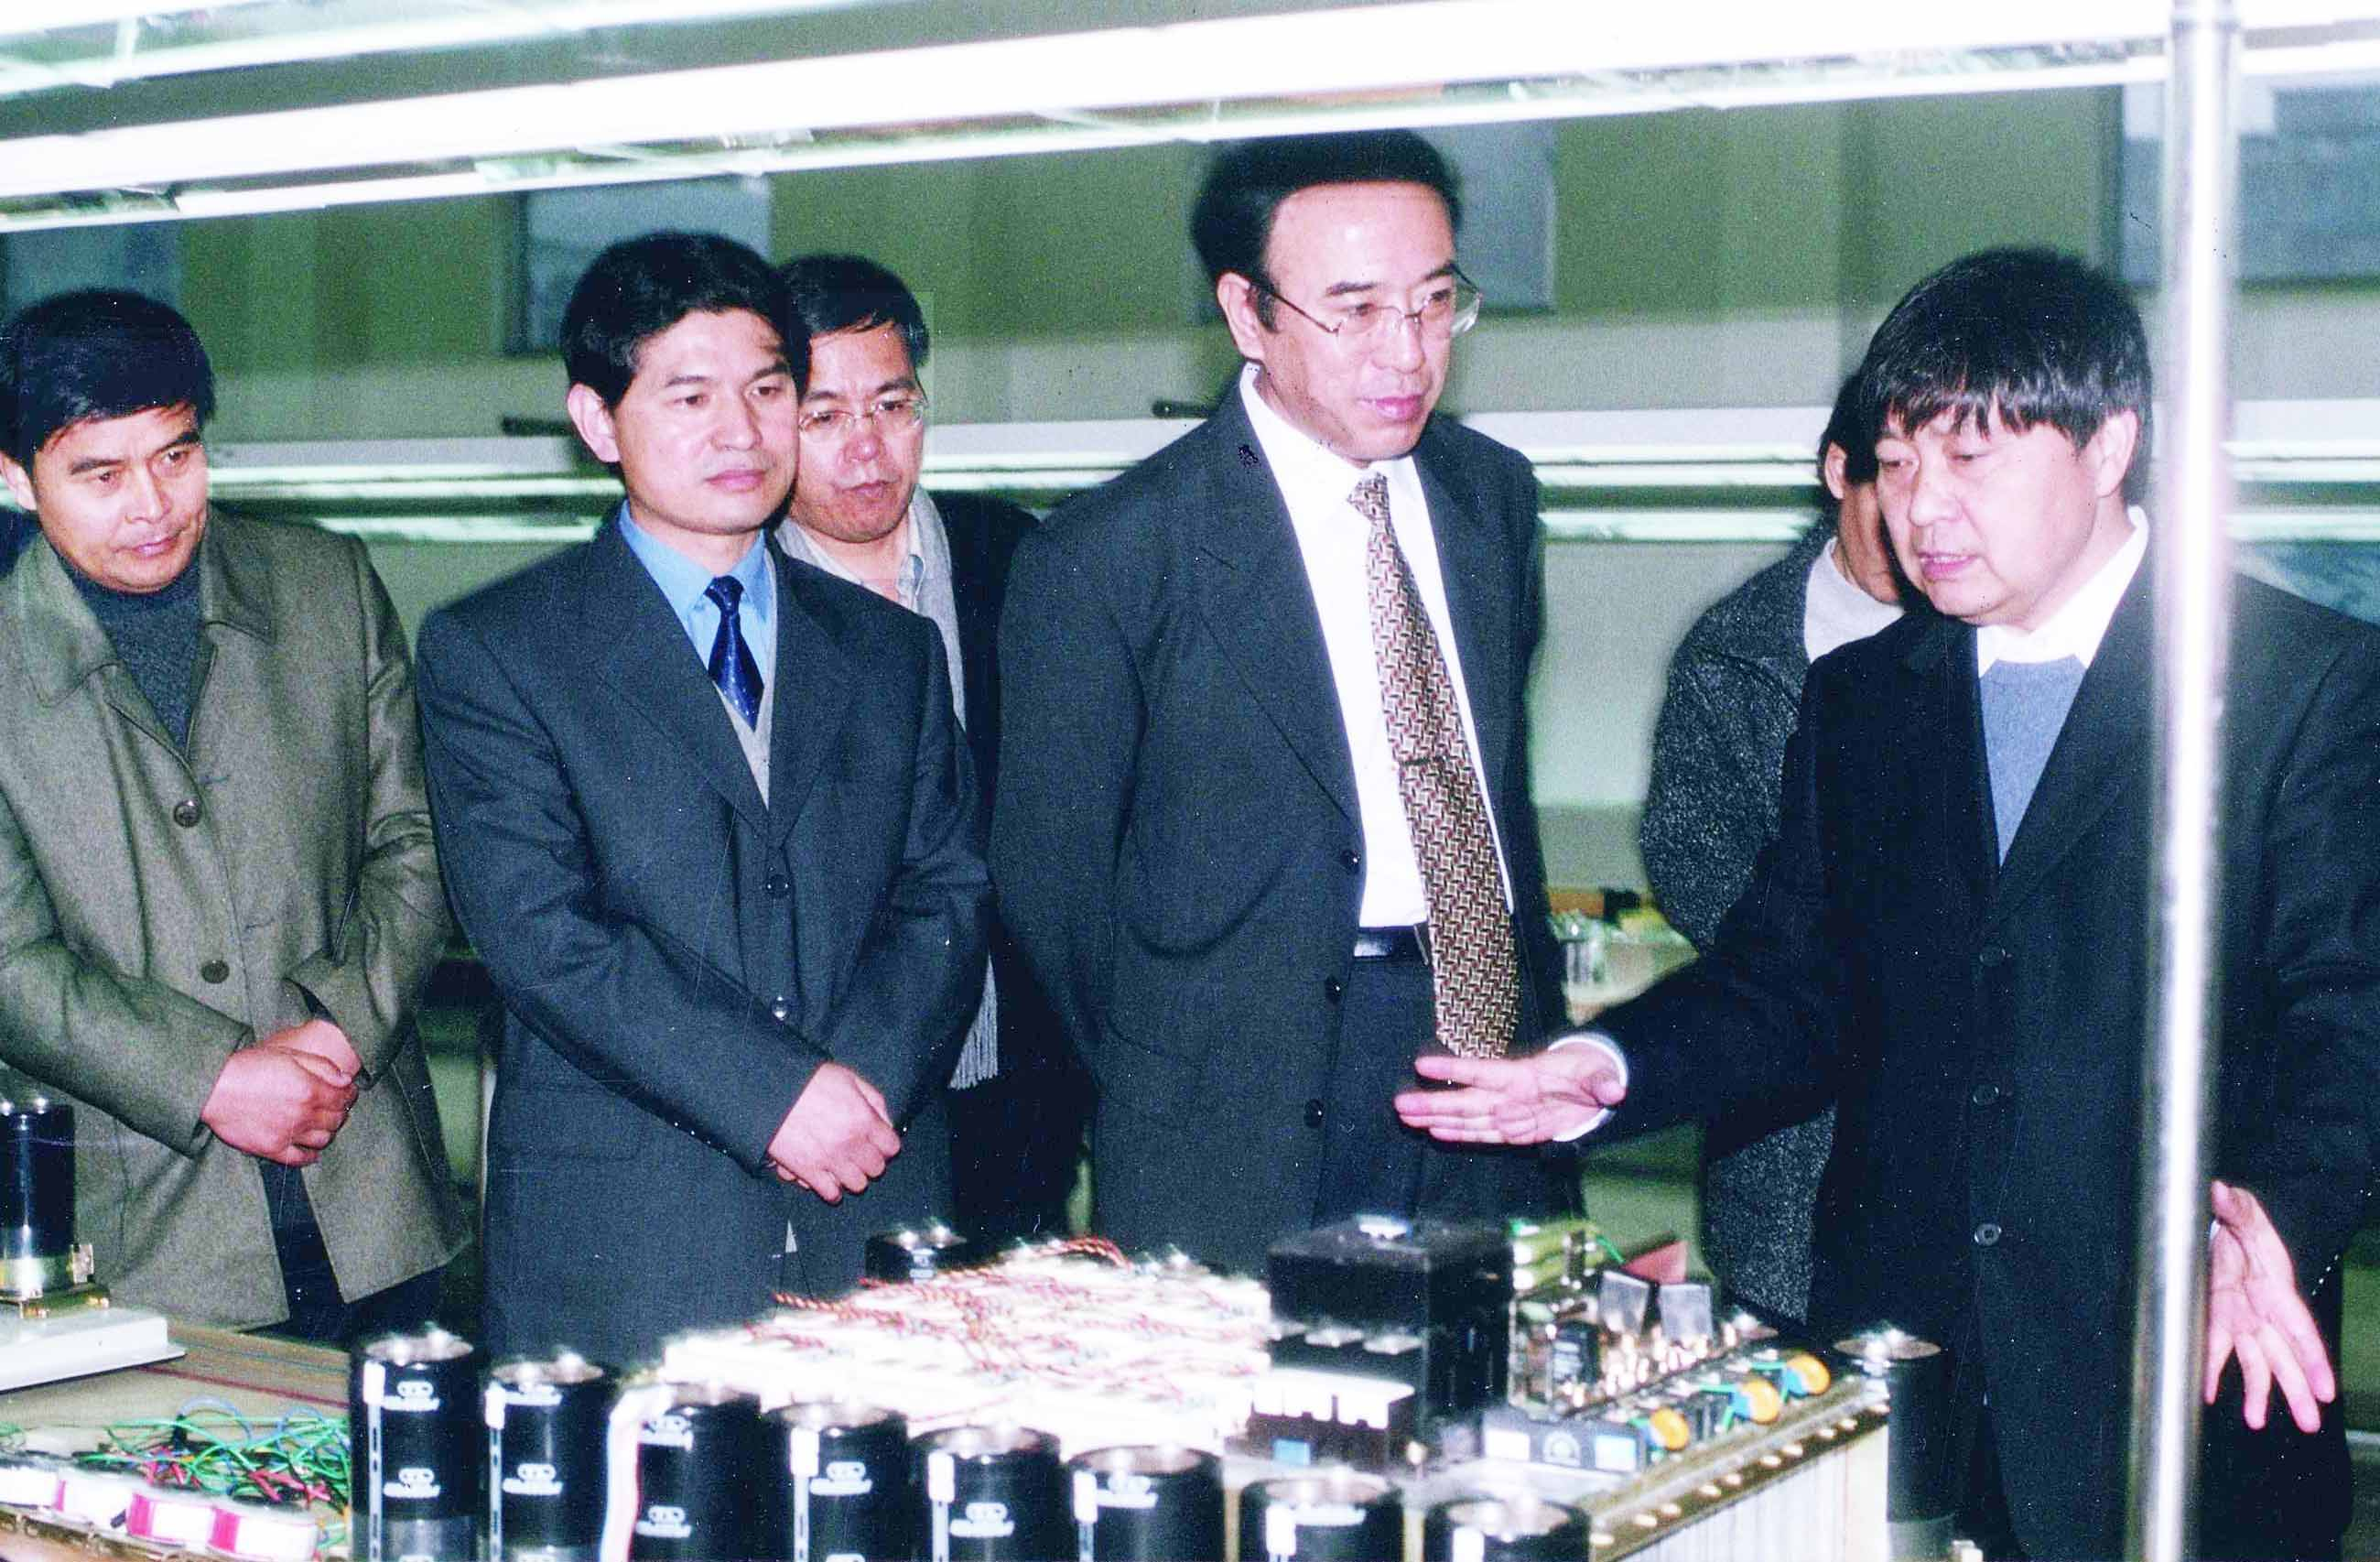 State Intellectual Property Office Commissioner Jingchuan Wang touring the Senlan inverter production line